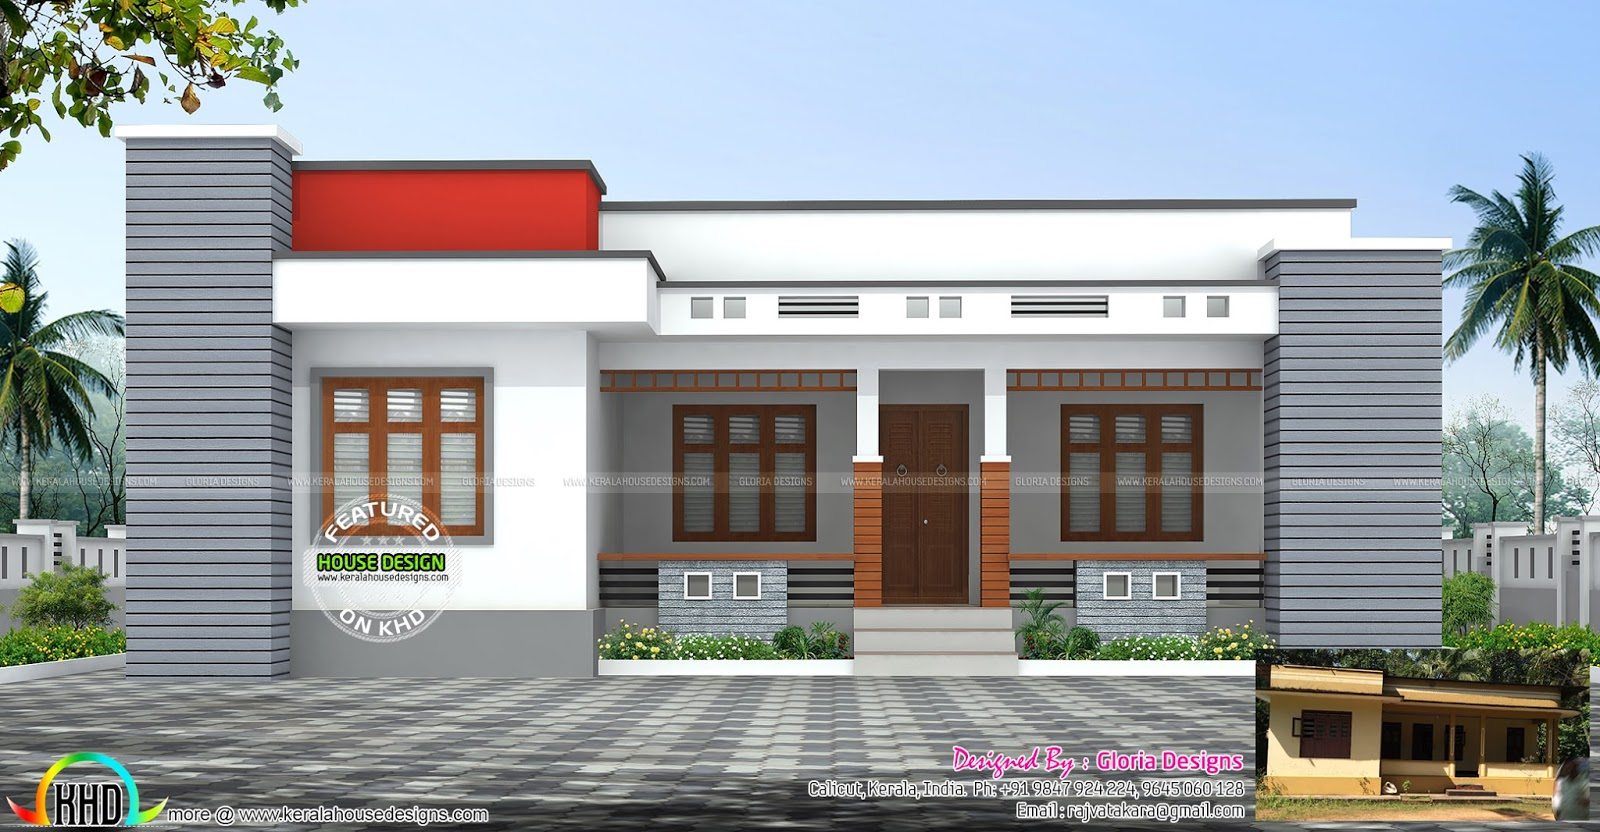 April 2016 kerala home design and floor plans for Single floor house plans